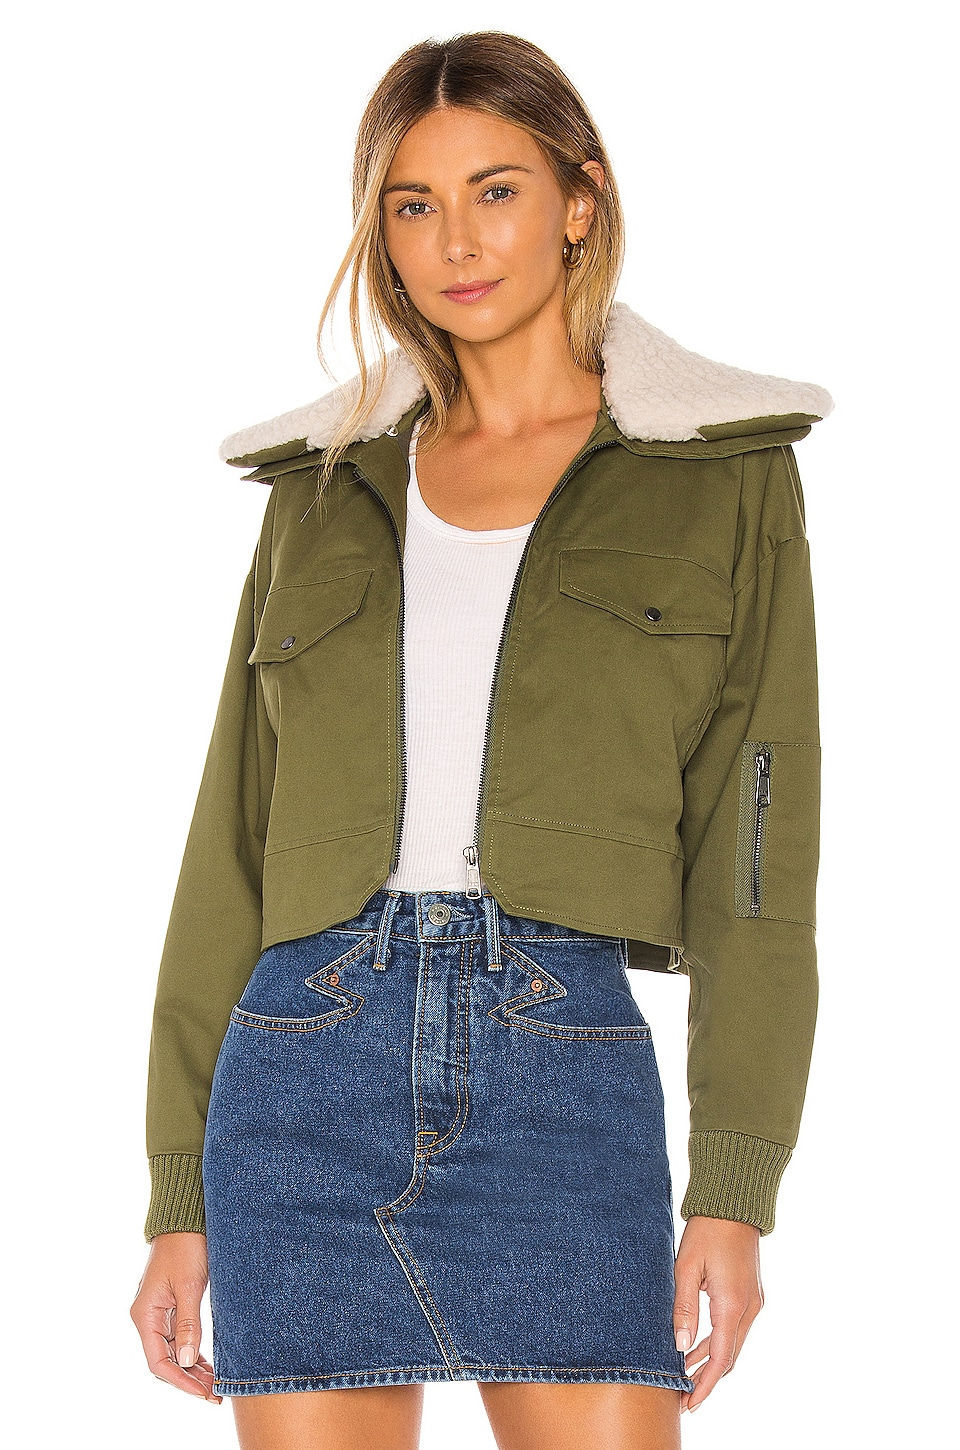 Tularosa Johnnie Jacket in Army Green